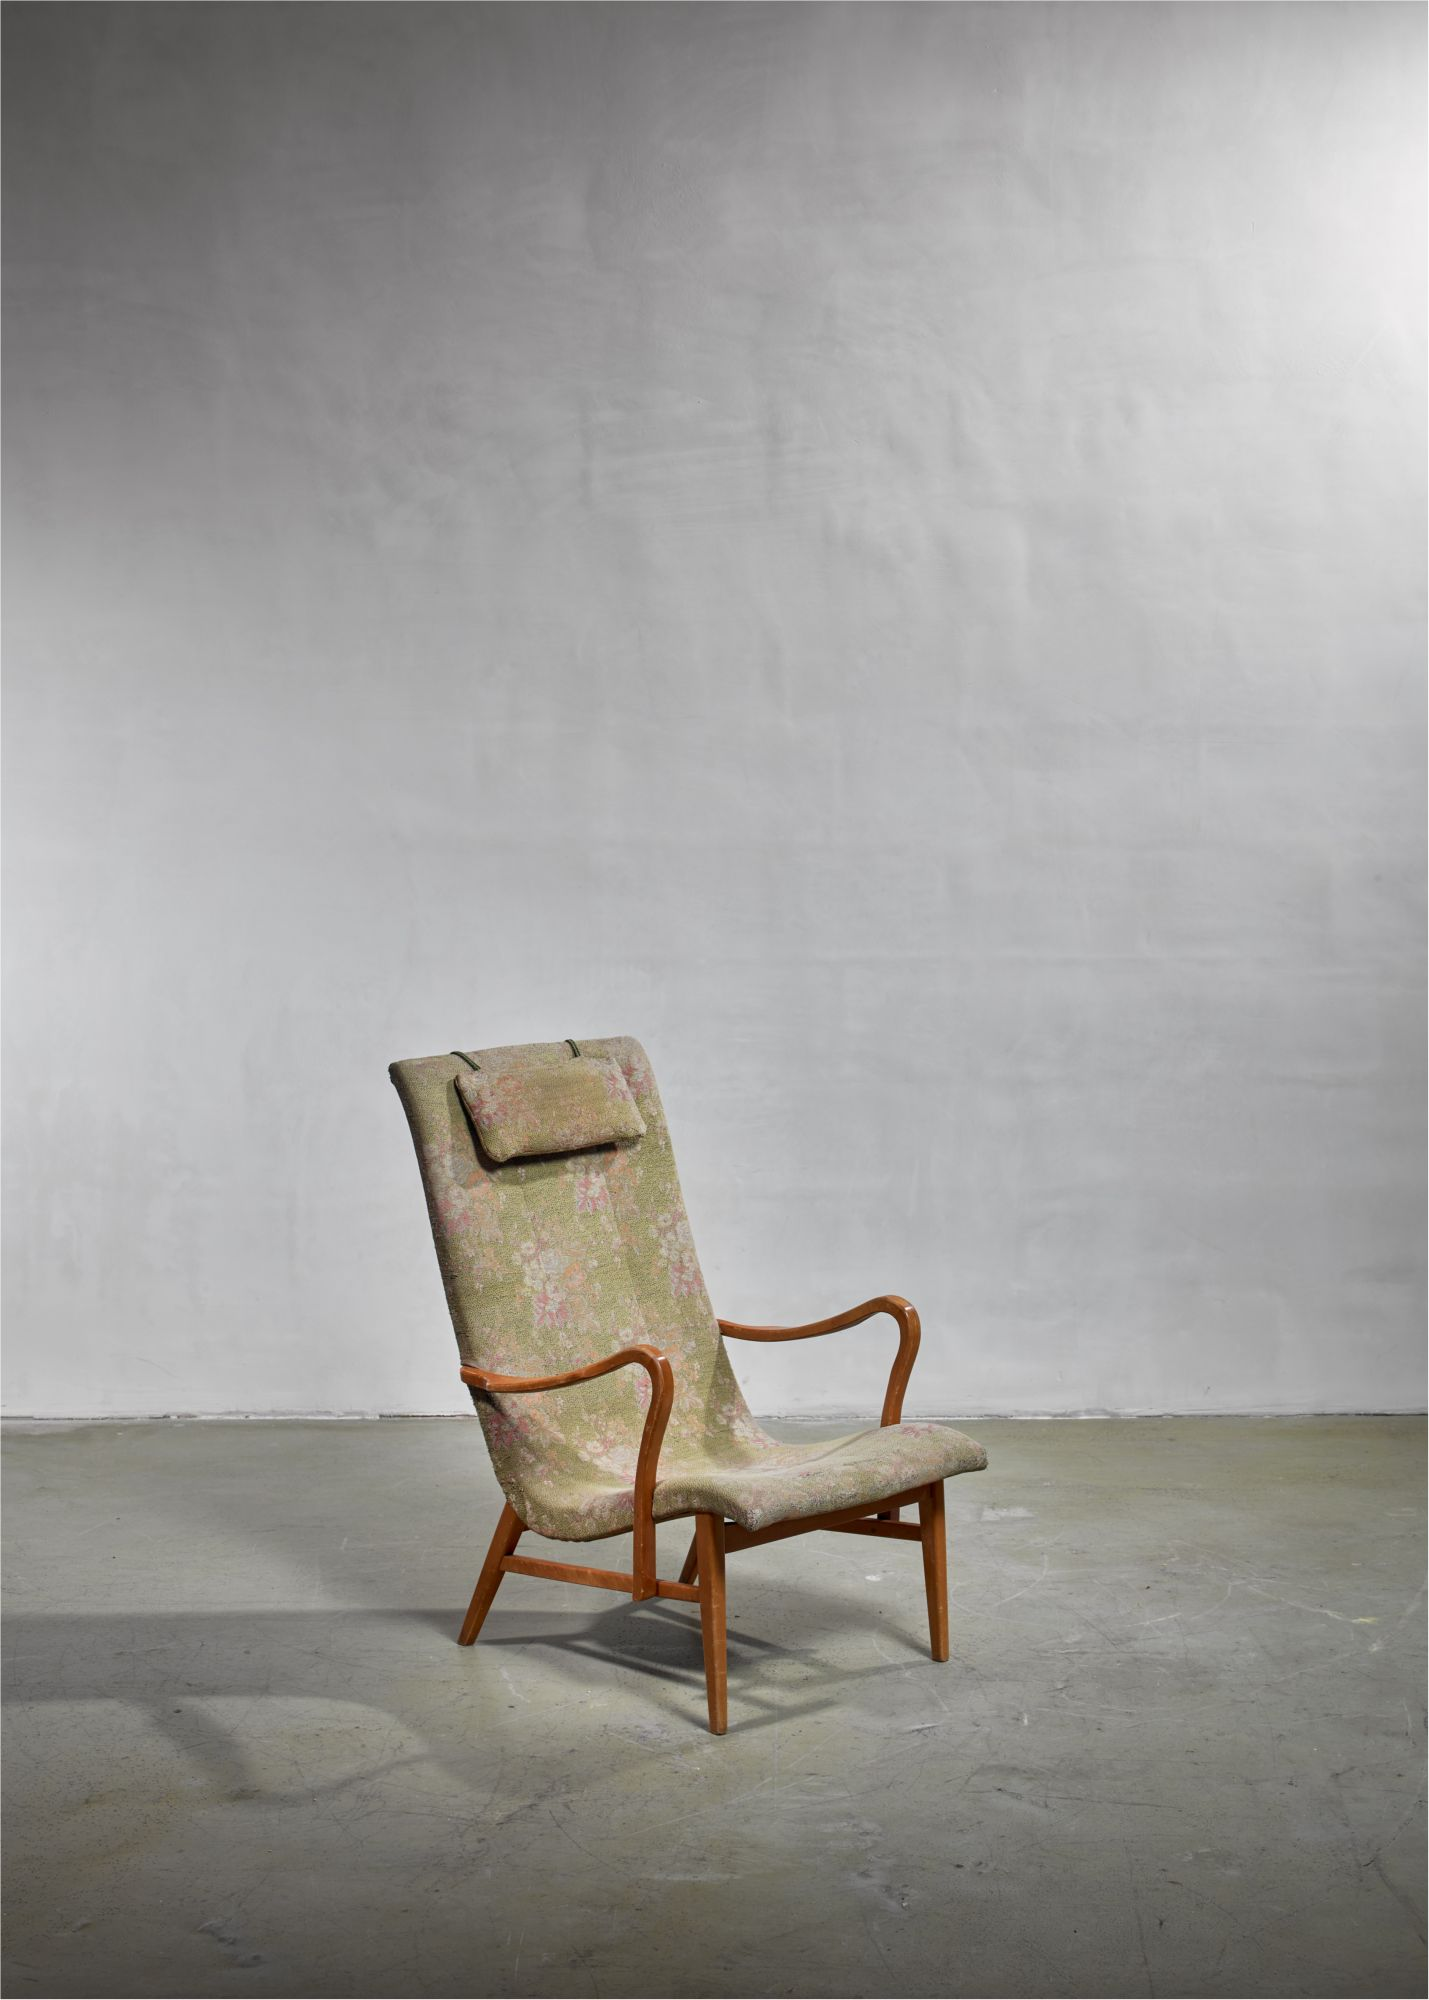 Phenomenal Carl Axel Acking Lounge Chair With Aged Floral Upholstery Squirreltailoven Fun Painted Chair Ideas Images Squirreltailovenorg